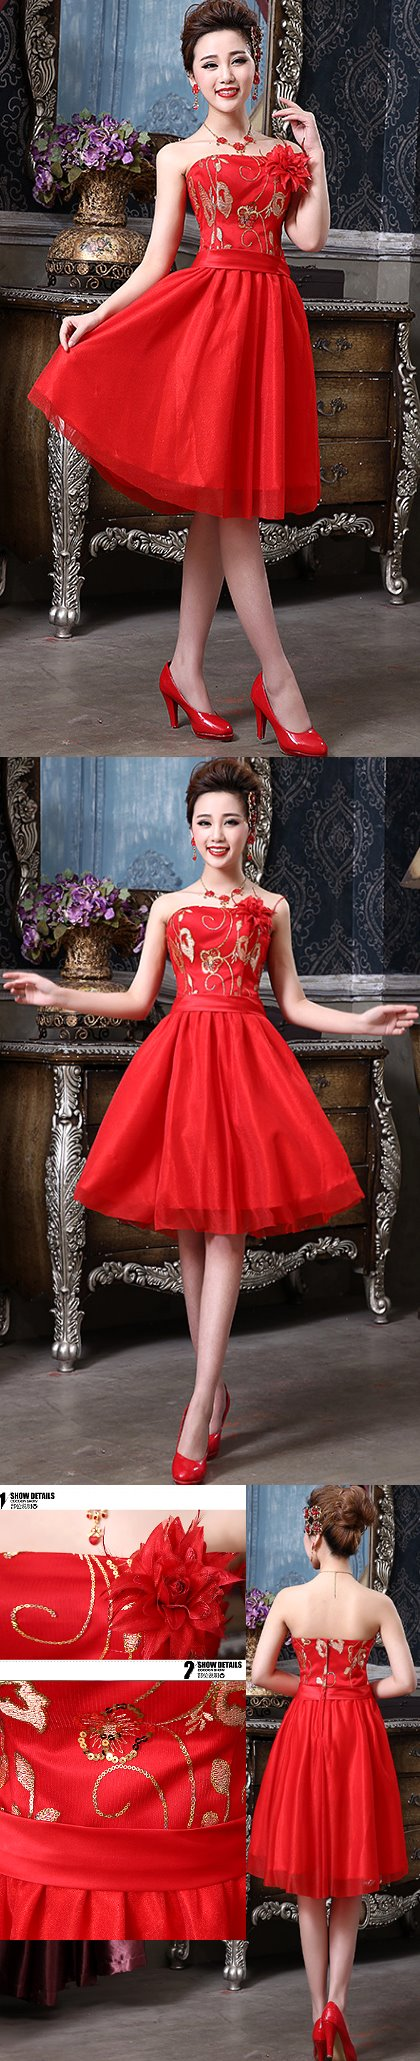 Bare-shoulders Short-length Bridal Cheongsam (RM)